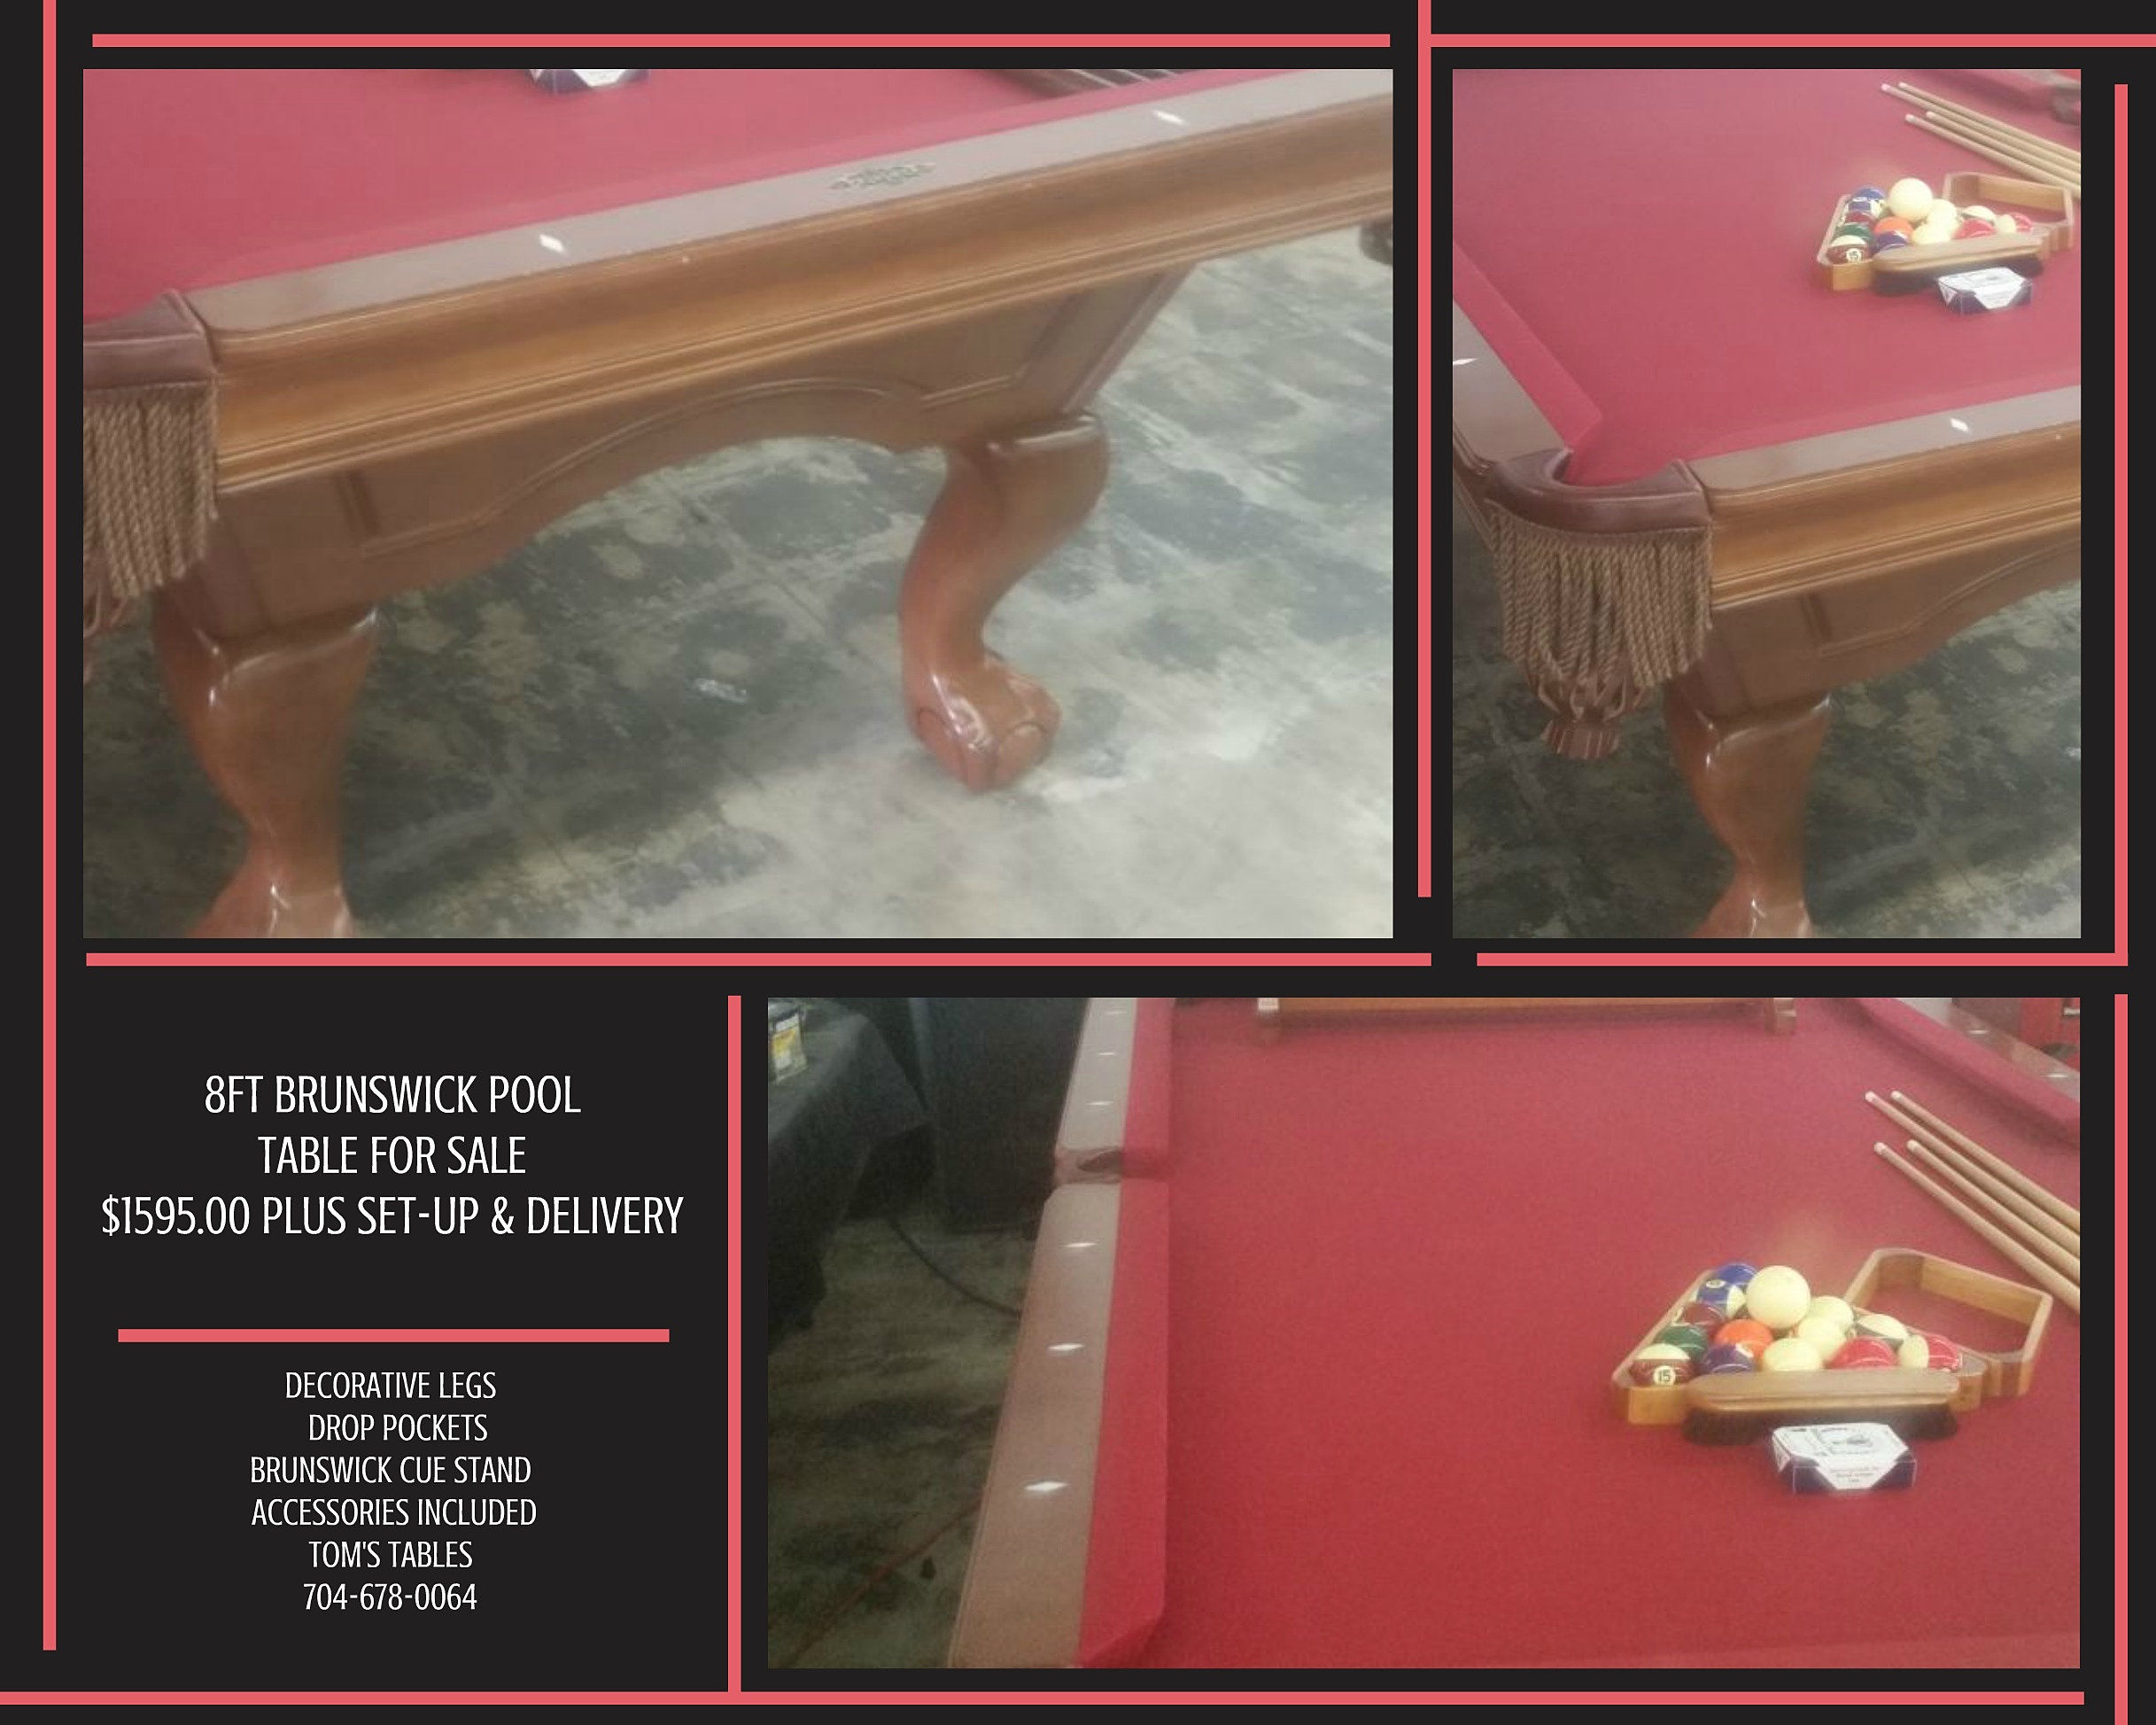 Pool table legs accessories for sale - Just In 8ft Brunswick Pool Table For Sale Burgundy Cloth Beautiful Table Decorative Legs Accessories